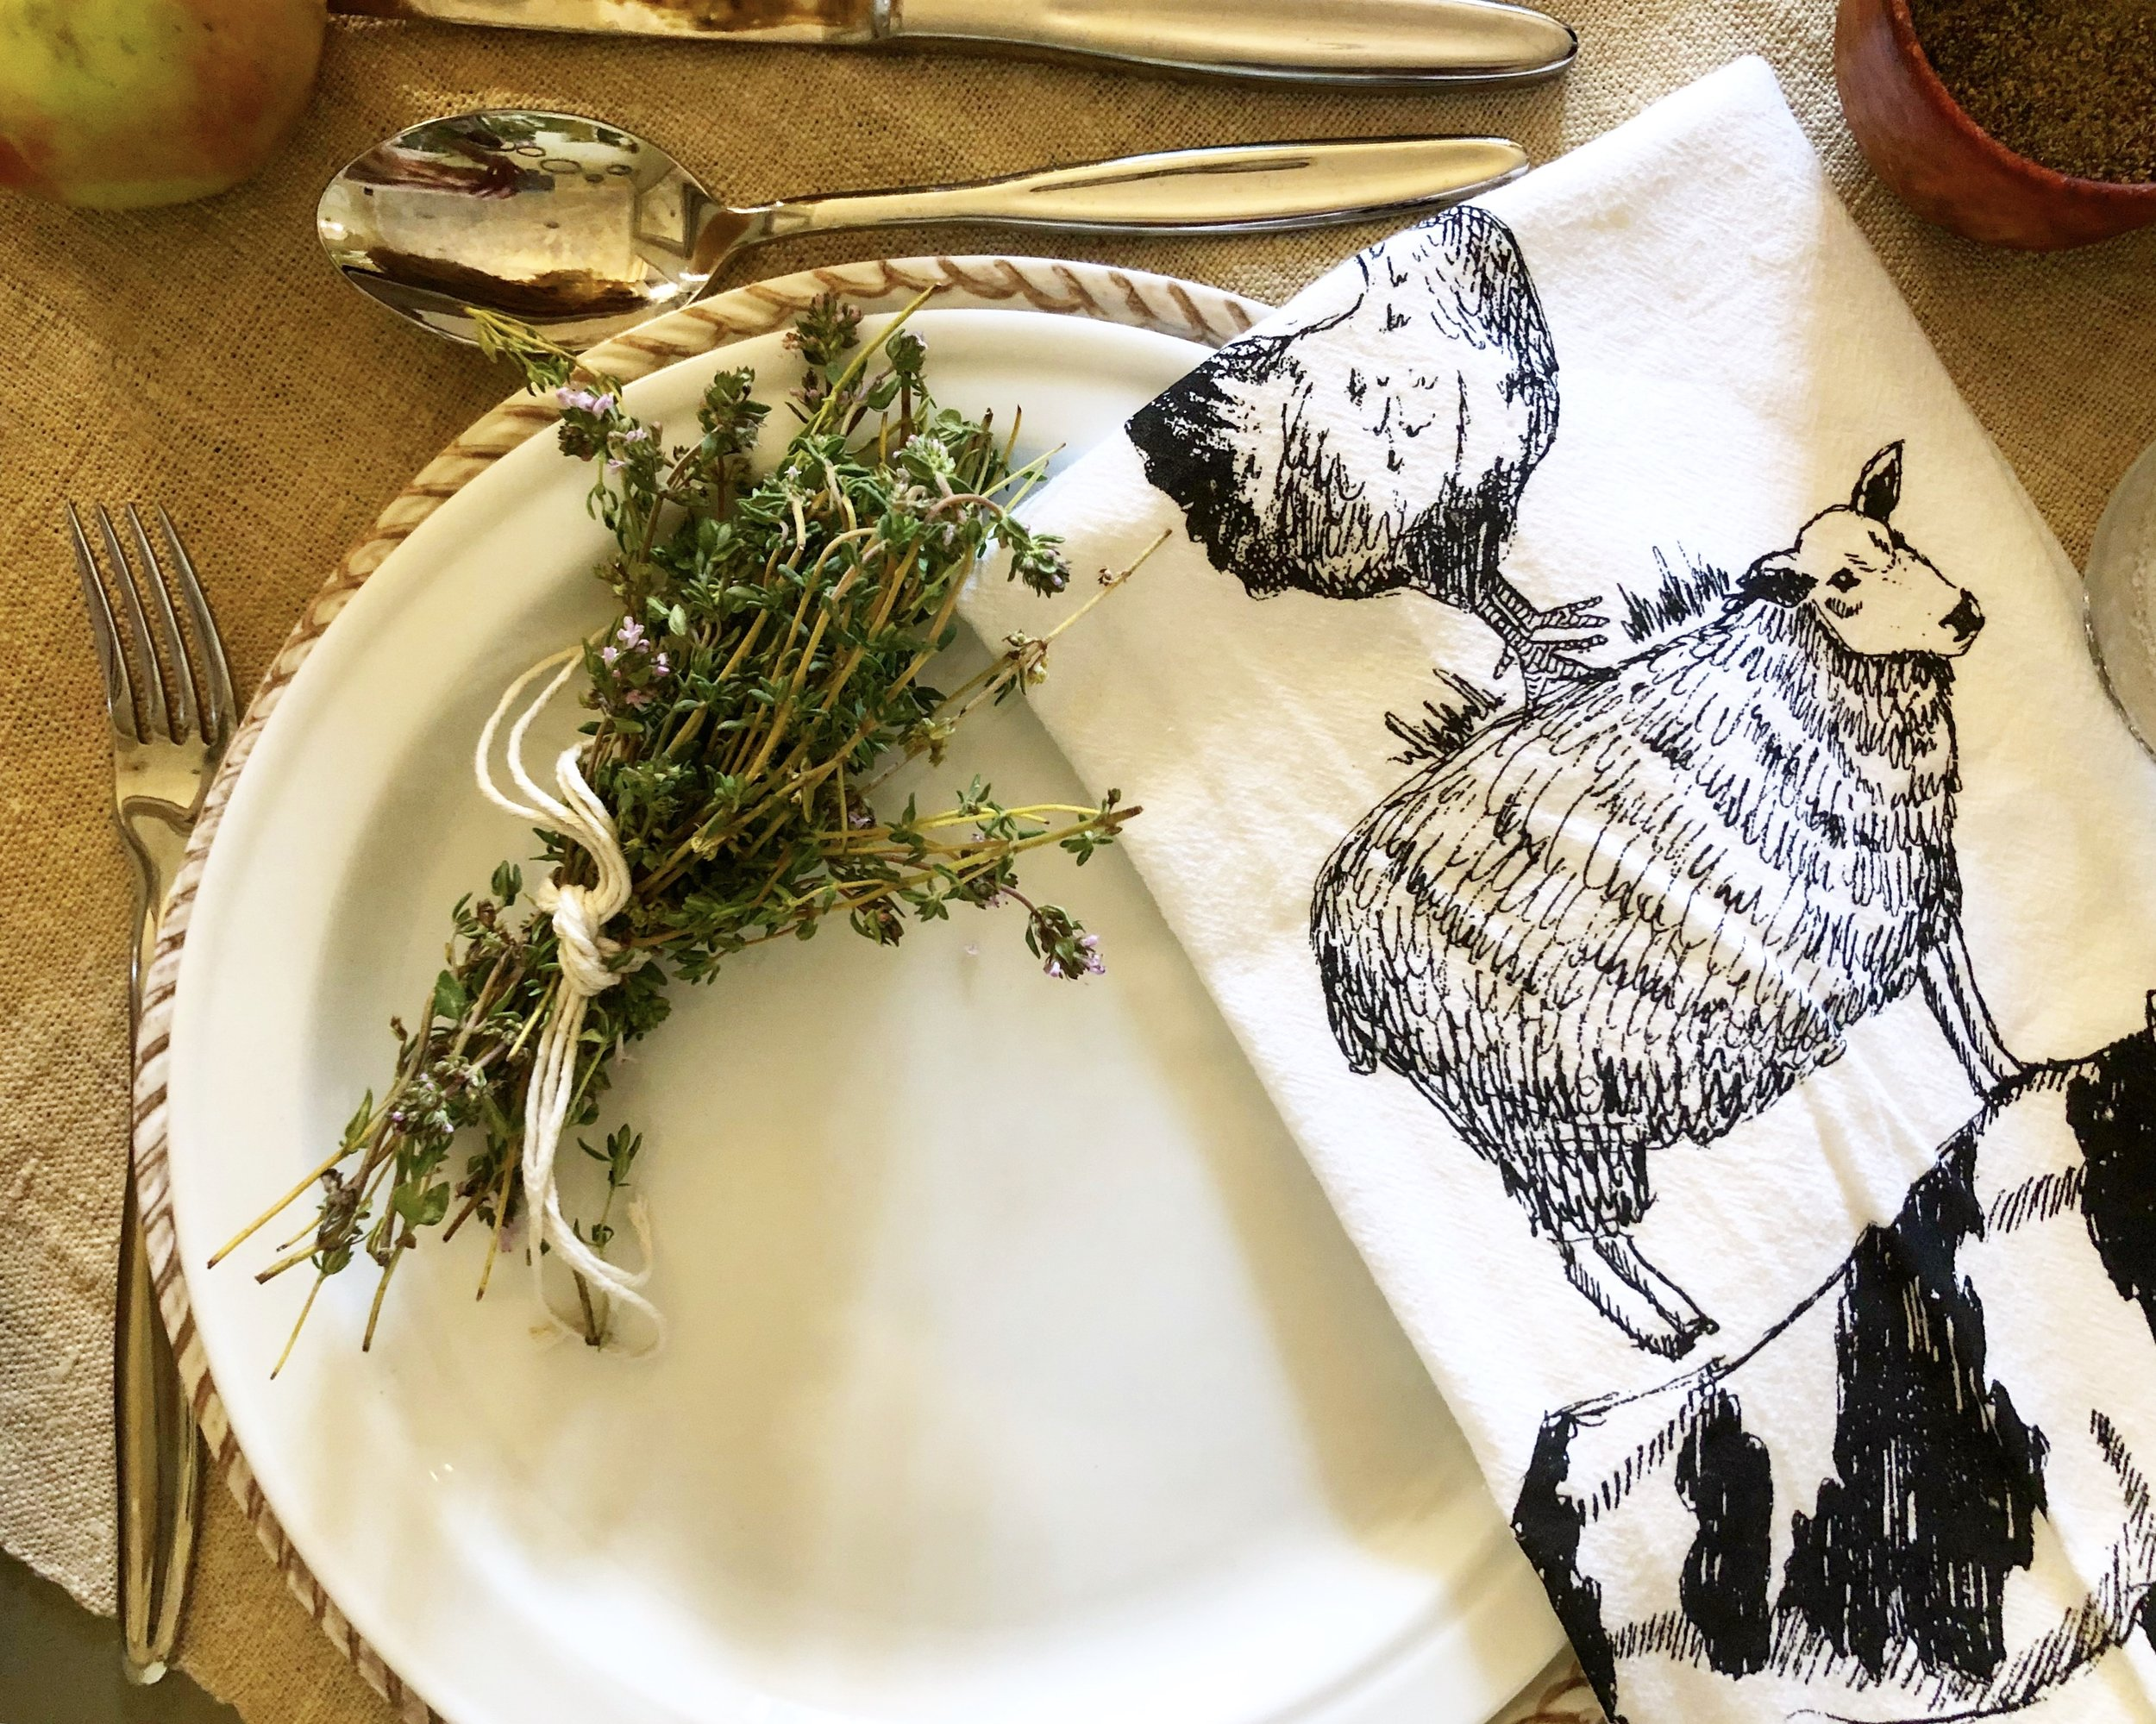 As Mabel Mercer once allegedly said, thyme heals everything.